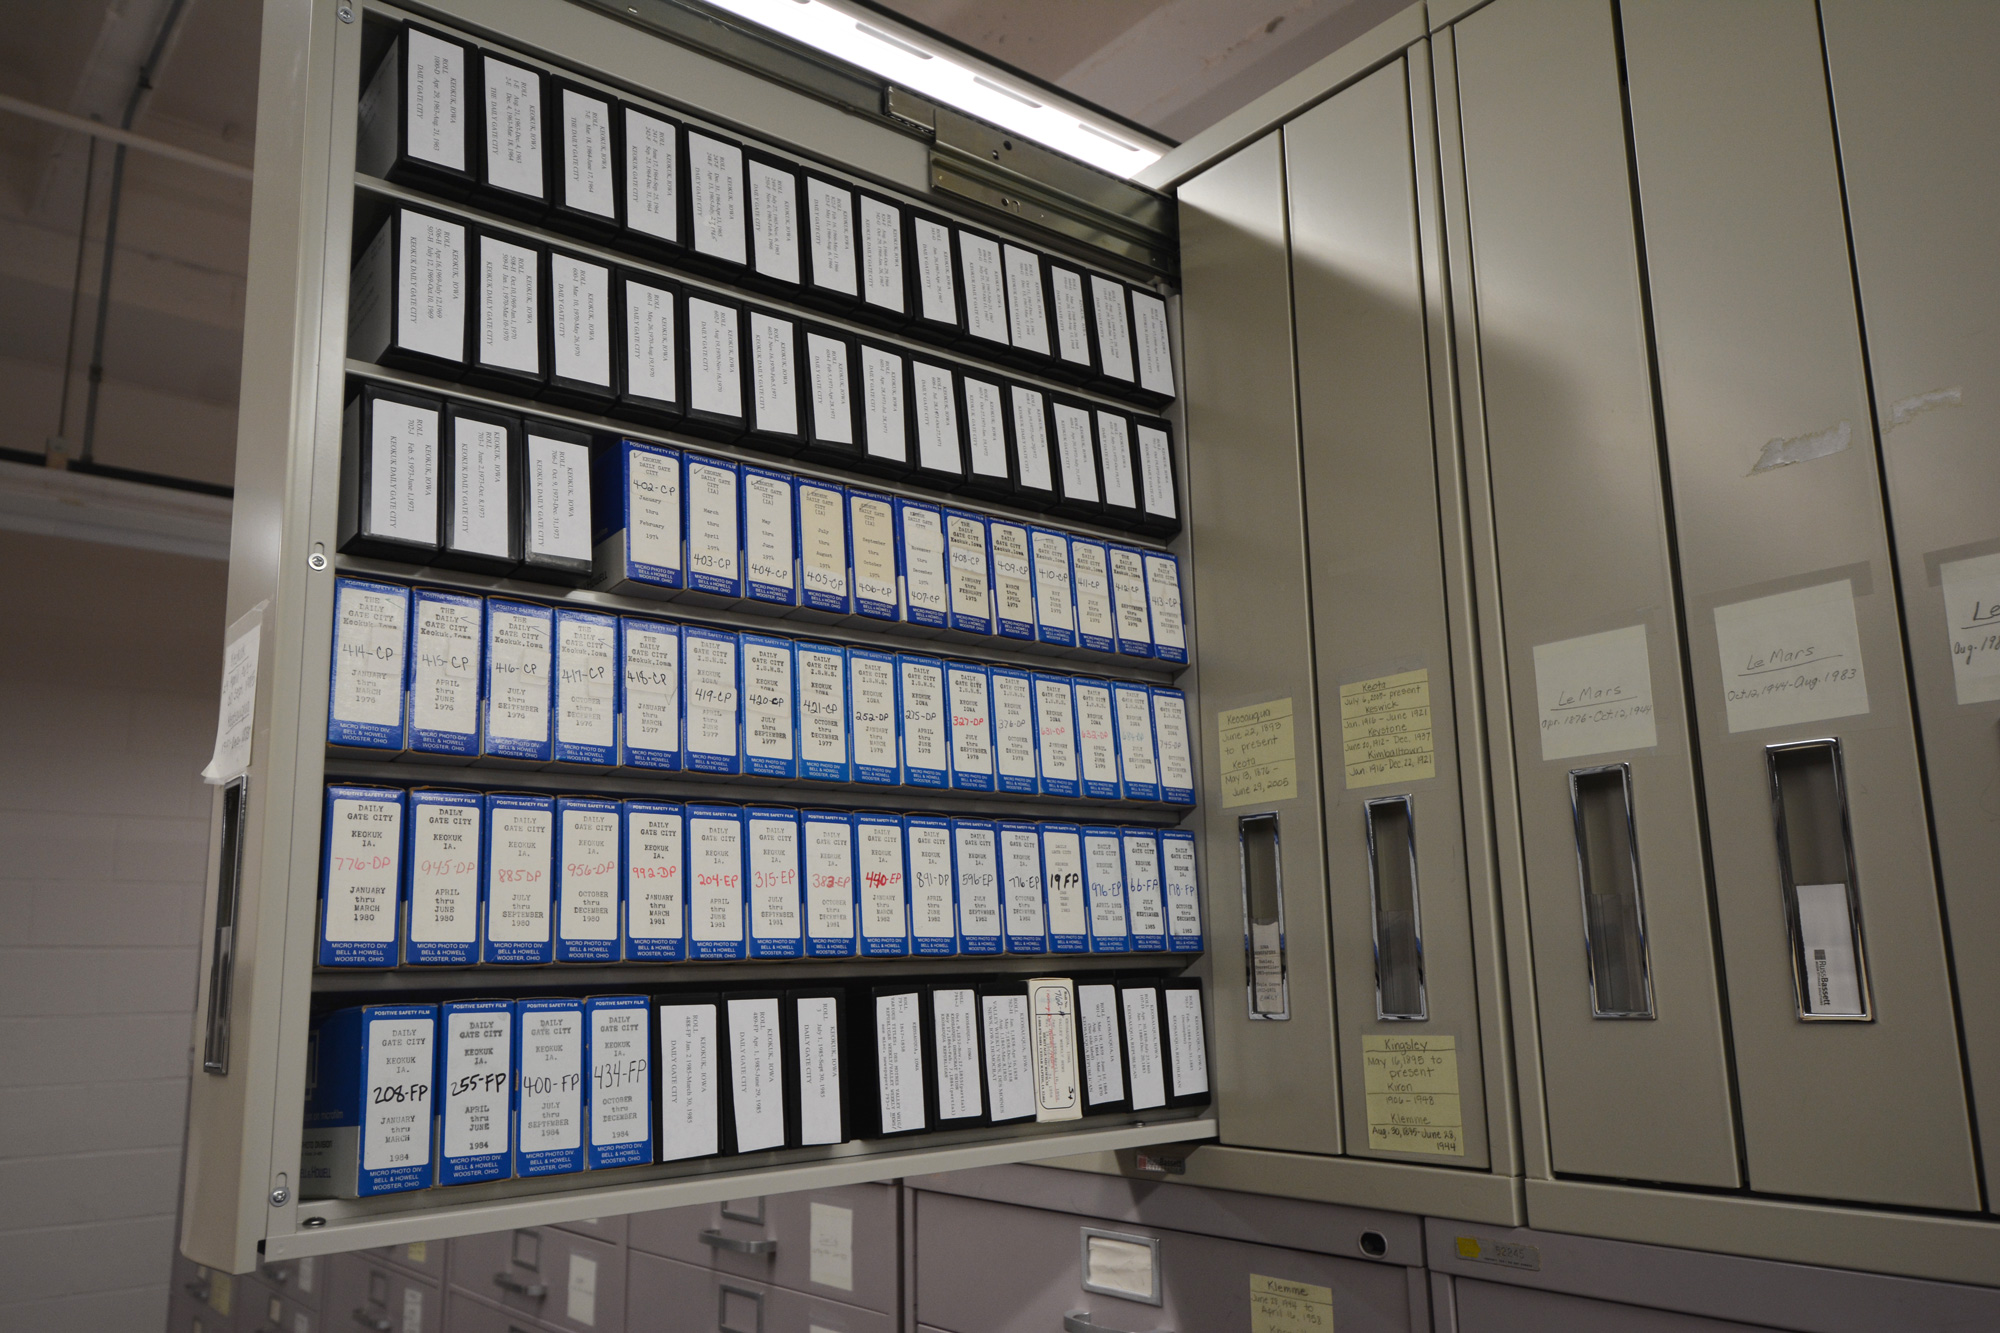 Rights As A Microfilm Subscriber